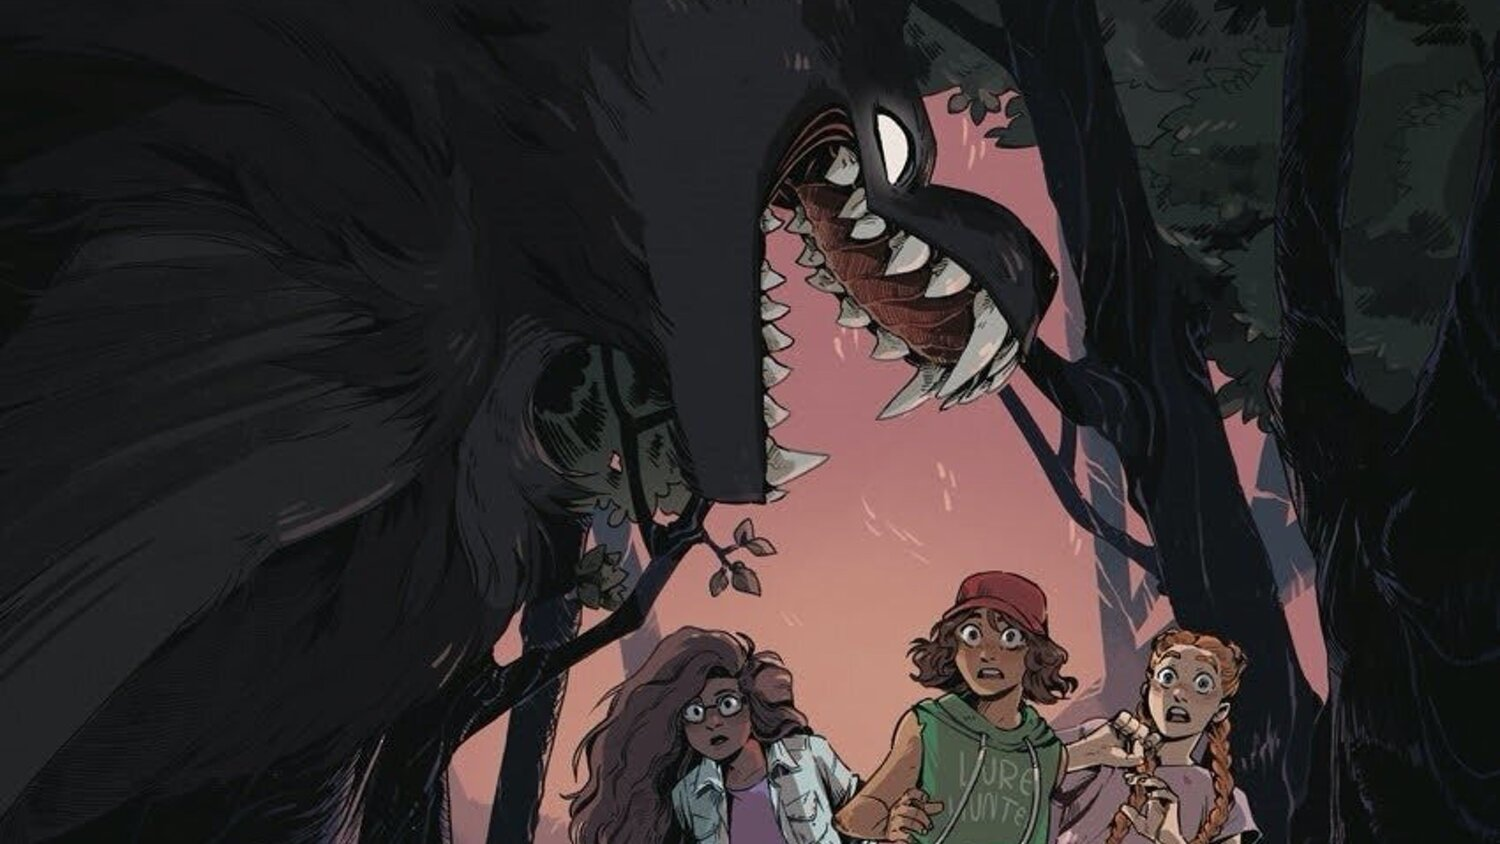 GOOSEBUMPS: SECRETS OF THE SWAMP Comic Book Announced with Cover Art